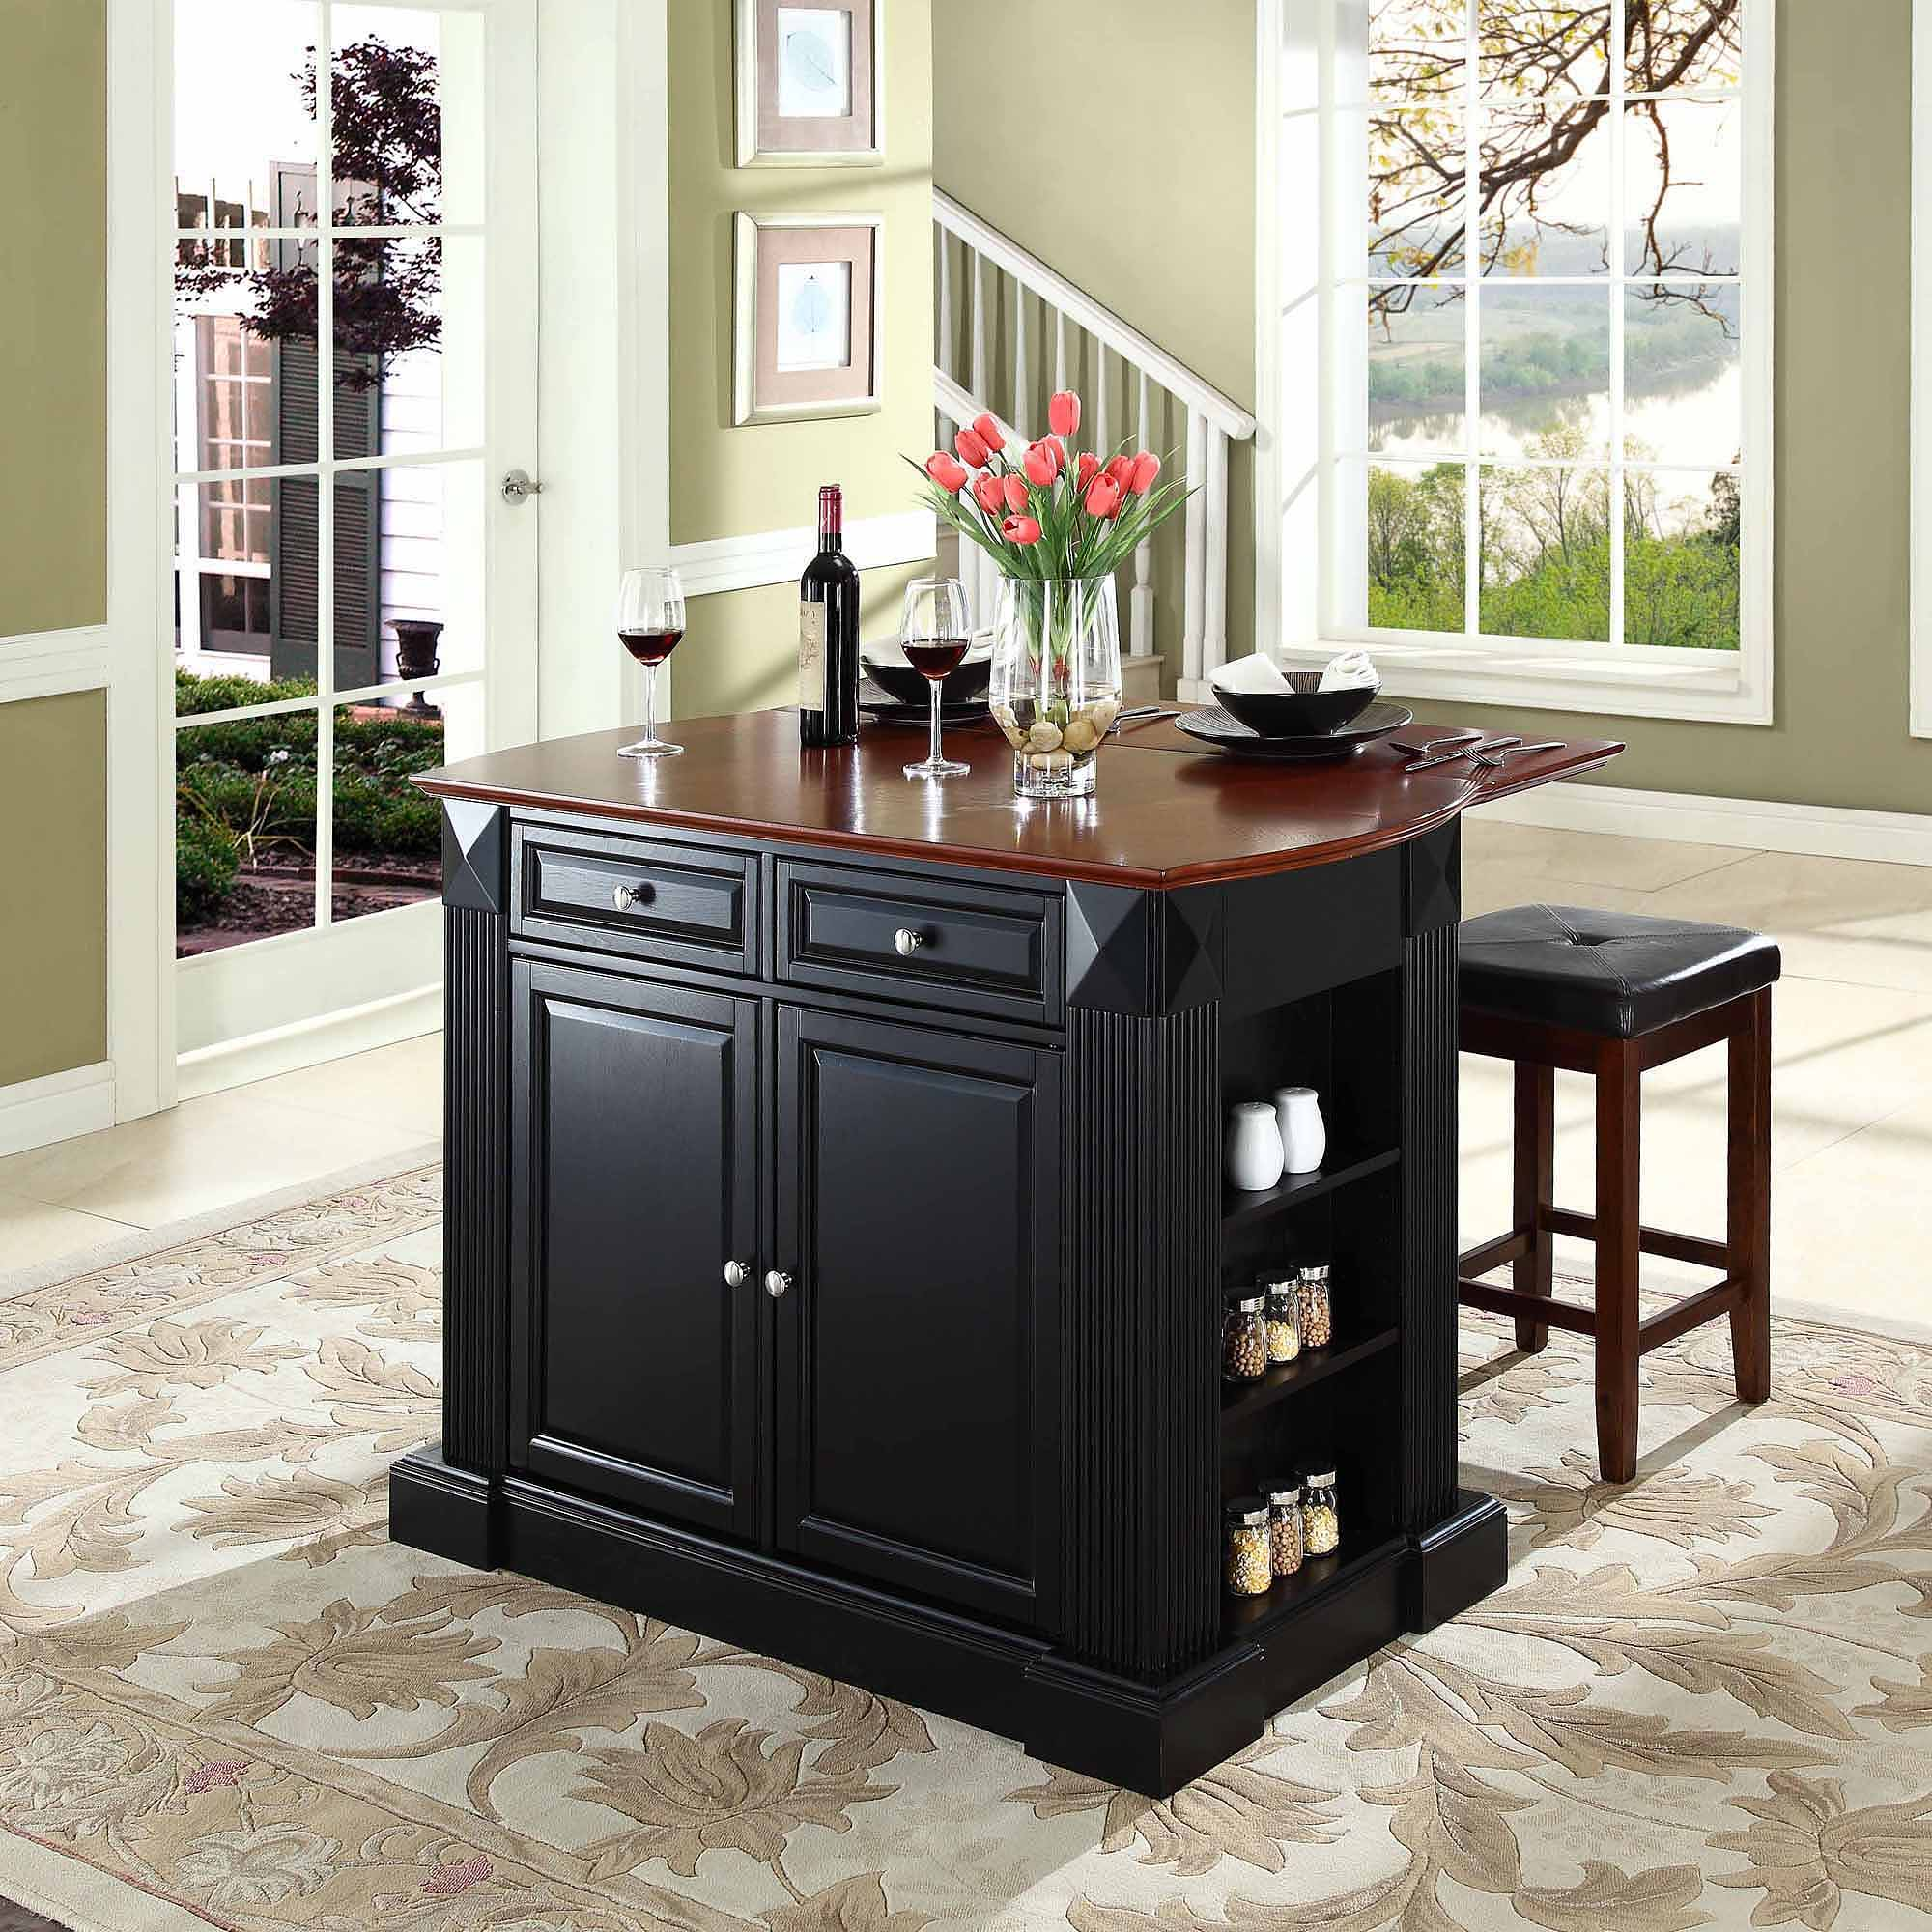 "Crosley Furniture Drop Leaf Breakfast Bar Top Kitchen Island with 24"" Upholstered Square Seat Stools"